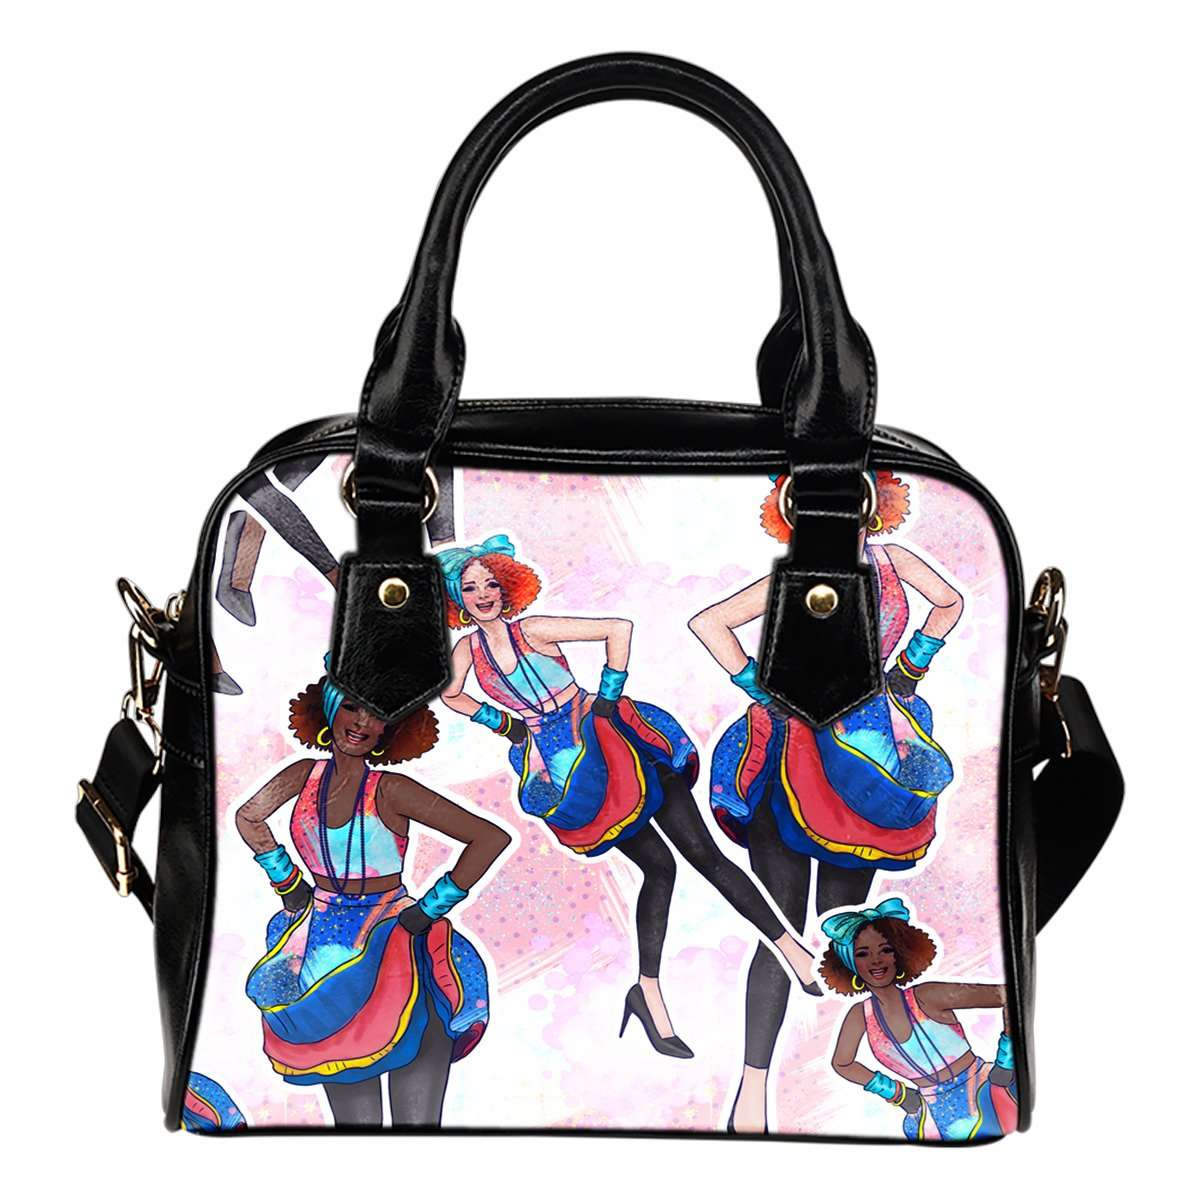 80's Fashion Girls Patterns #4 Fashion Shoulder Handbag w/ Removable Shoulder Straps Made of Vegan Leather - STUDIO 11 COUTURE